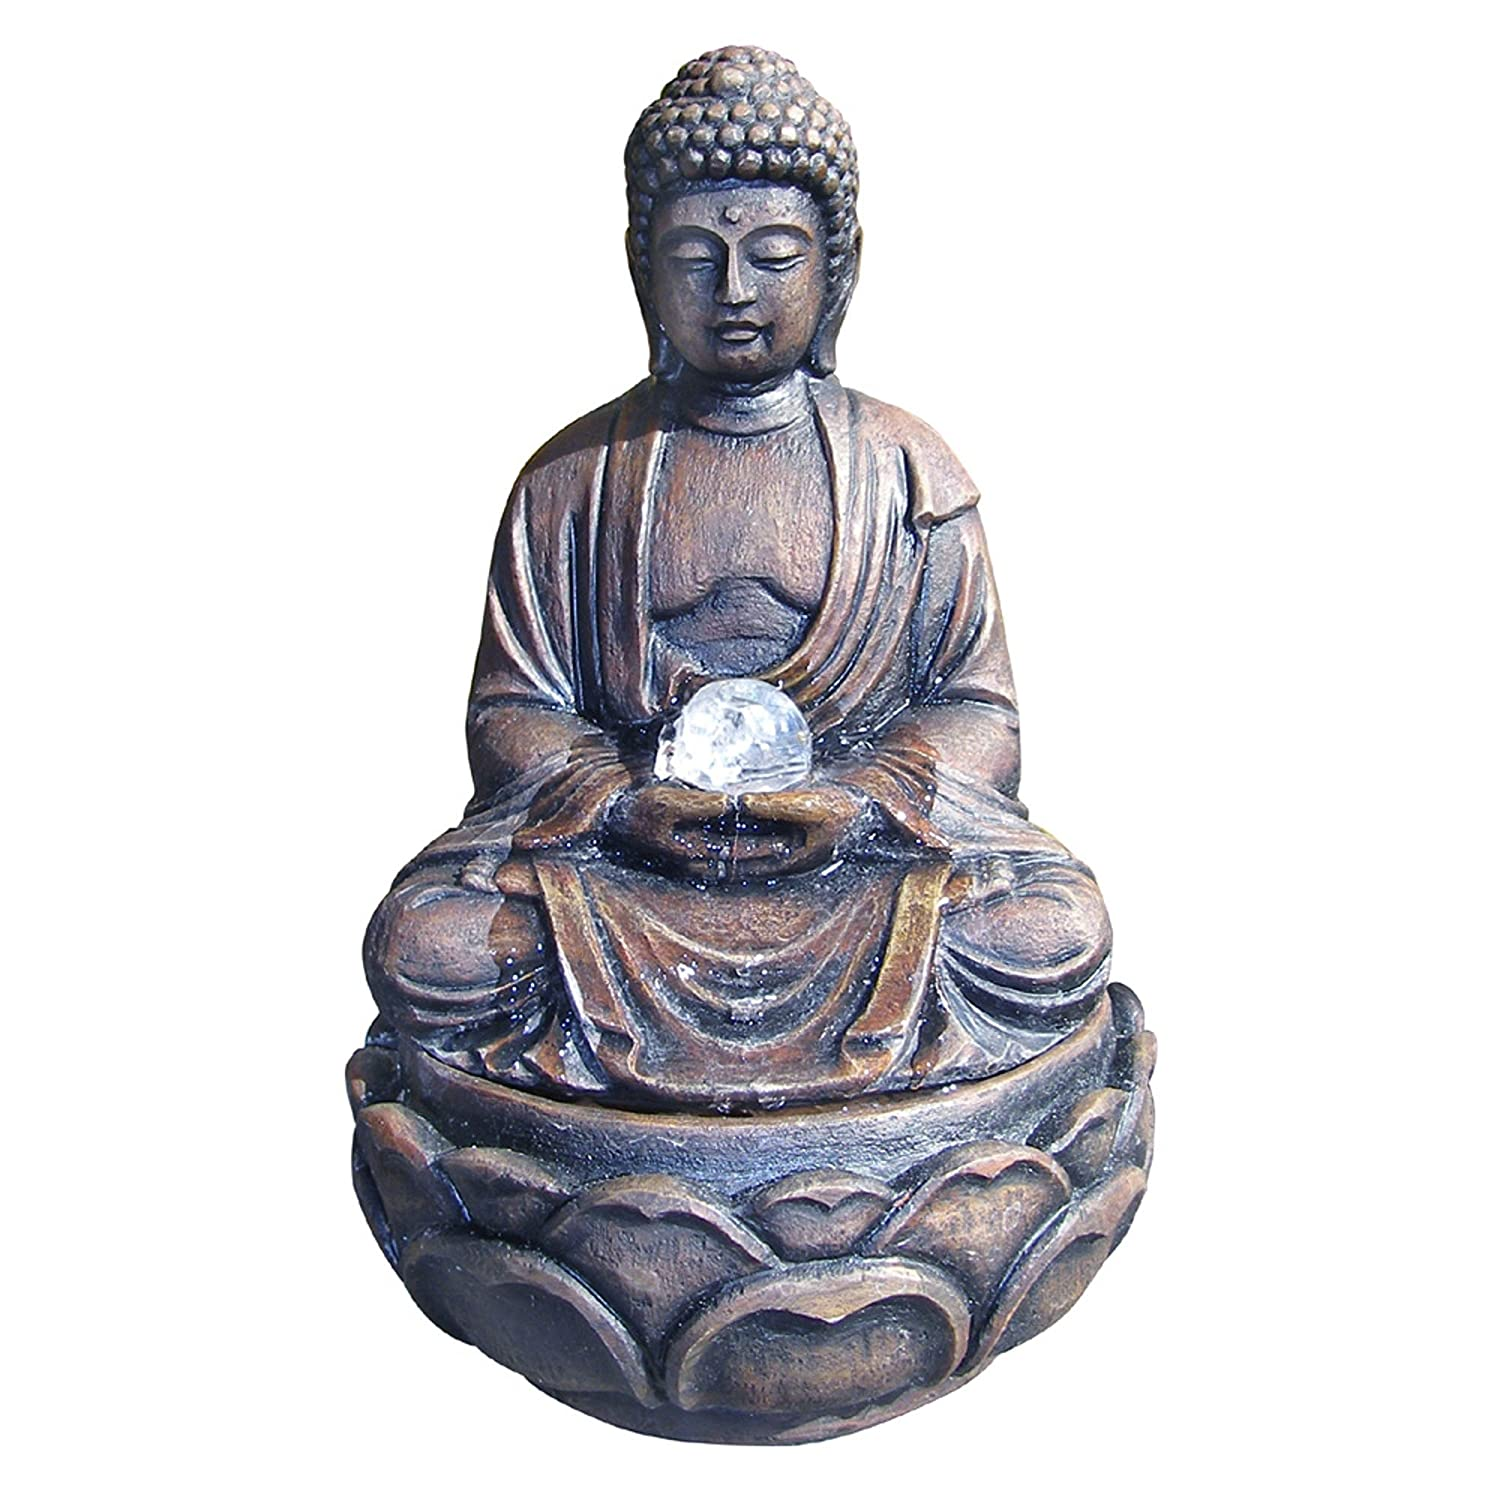 Buddha Fountains: 45 Buddha Fountains: Lotus Meditation Fountains With Peace